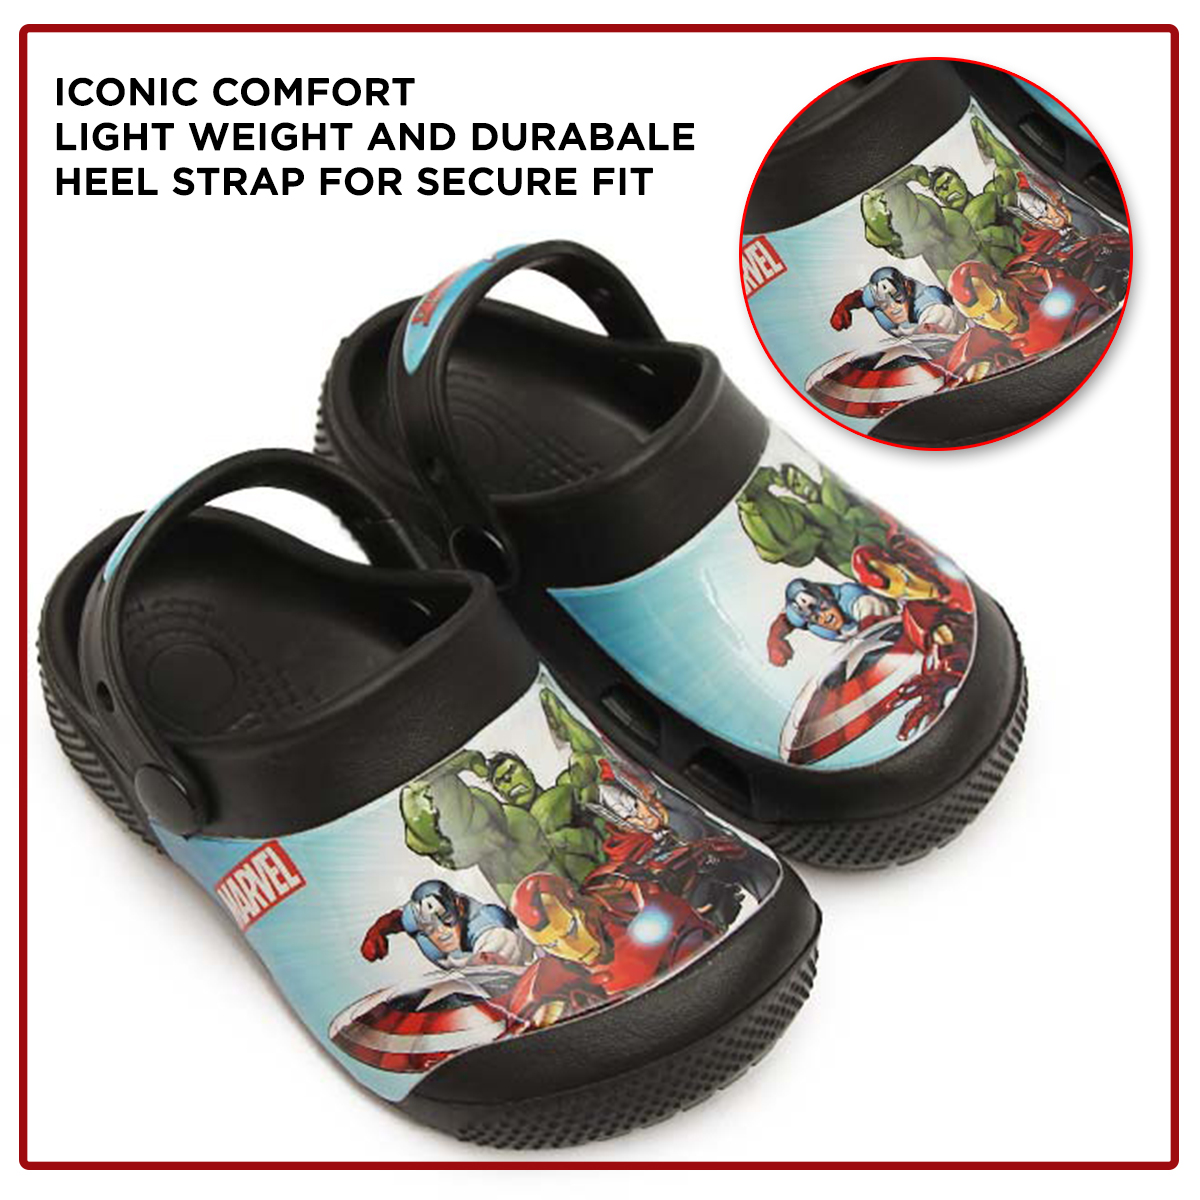 Marvel Heroes - Clog - 9133 - Black For Kids Summer Crocs Clog Slippers Sandals & Chappal For Your Kids - Non Slip Sandals Easy to Wear